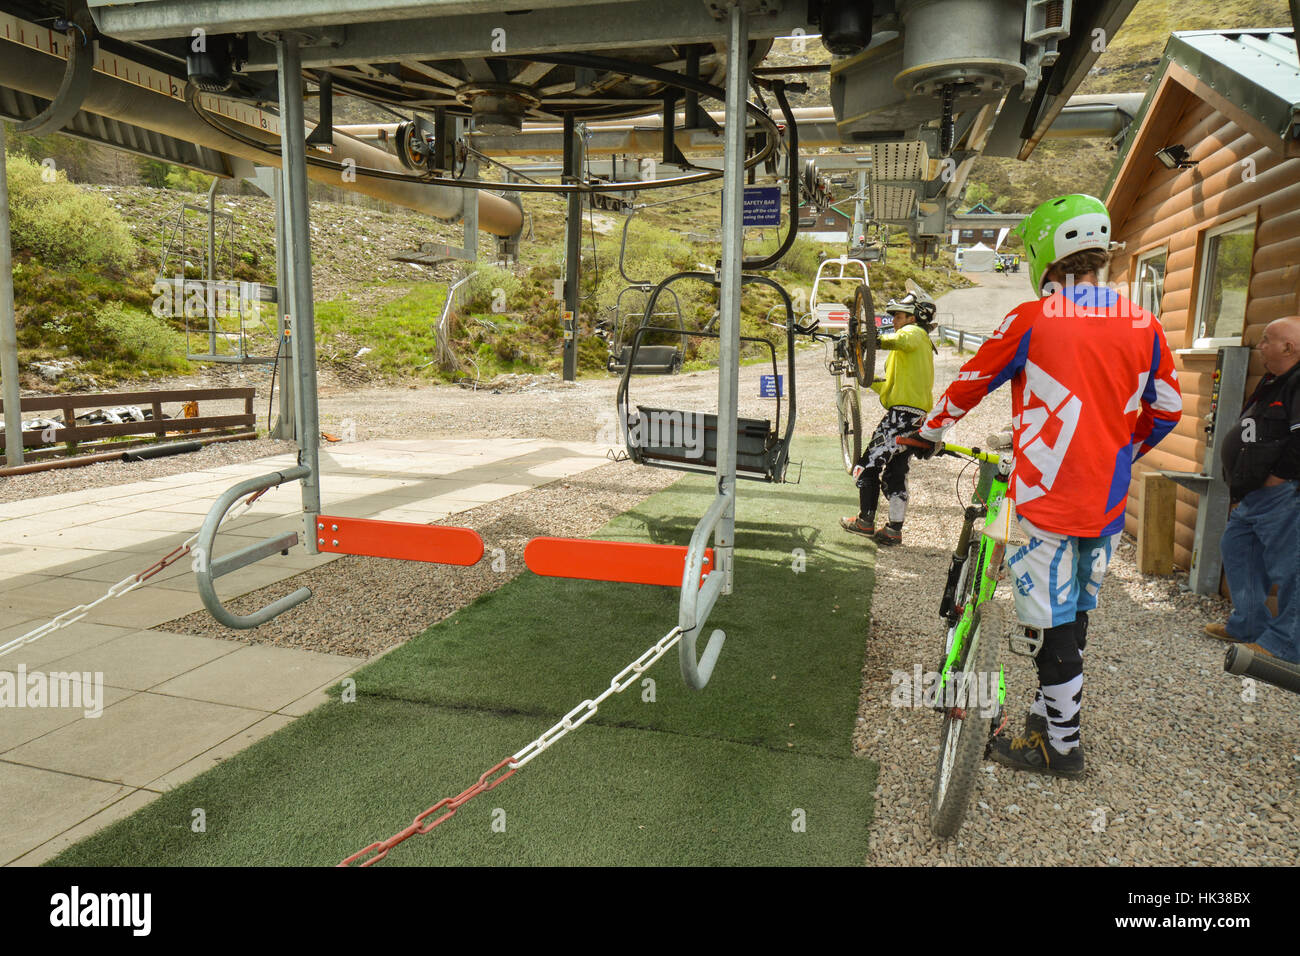 Glencoe lifts - used by mountain bikers in summer - Stock Image